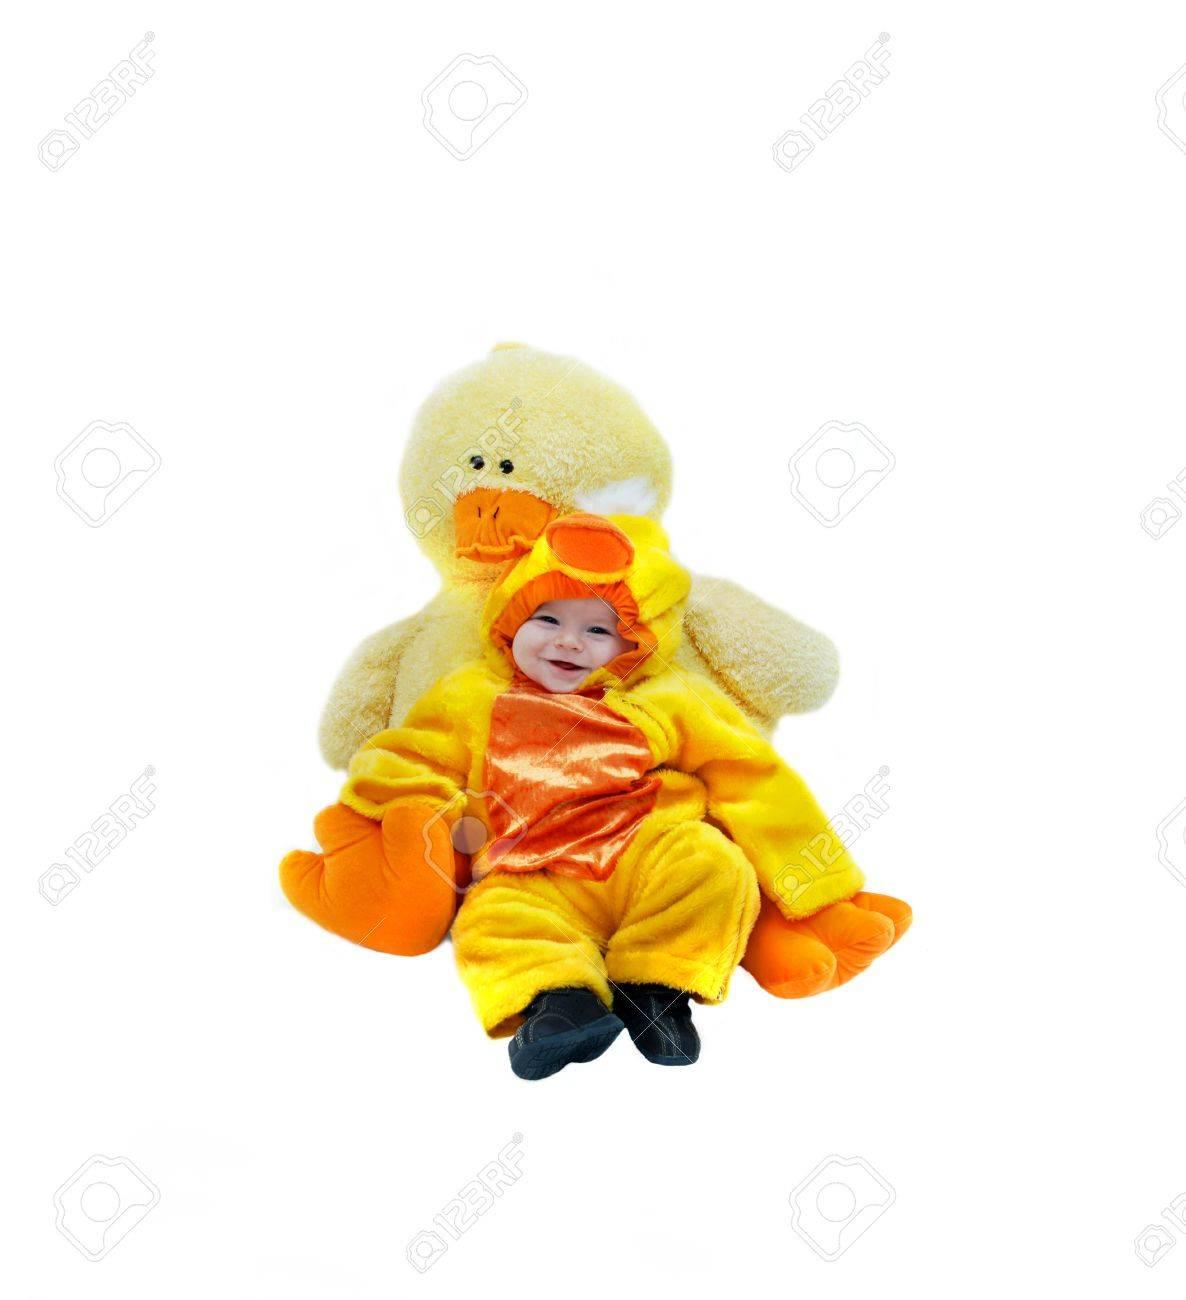 Baby dressed in baby duckling costume, cuddles with its mother